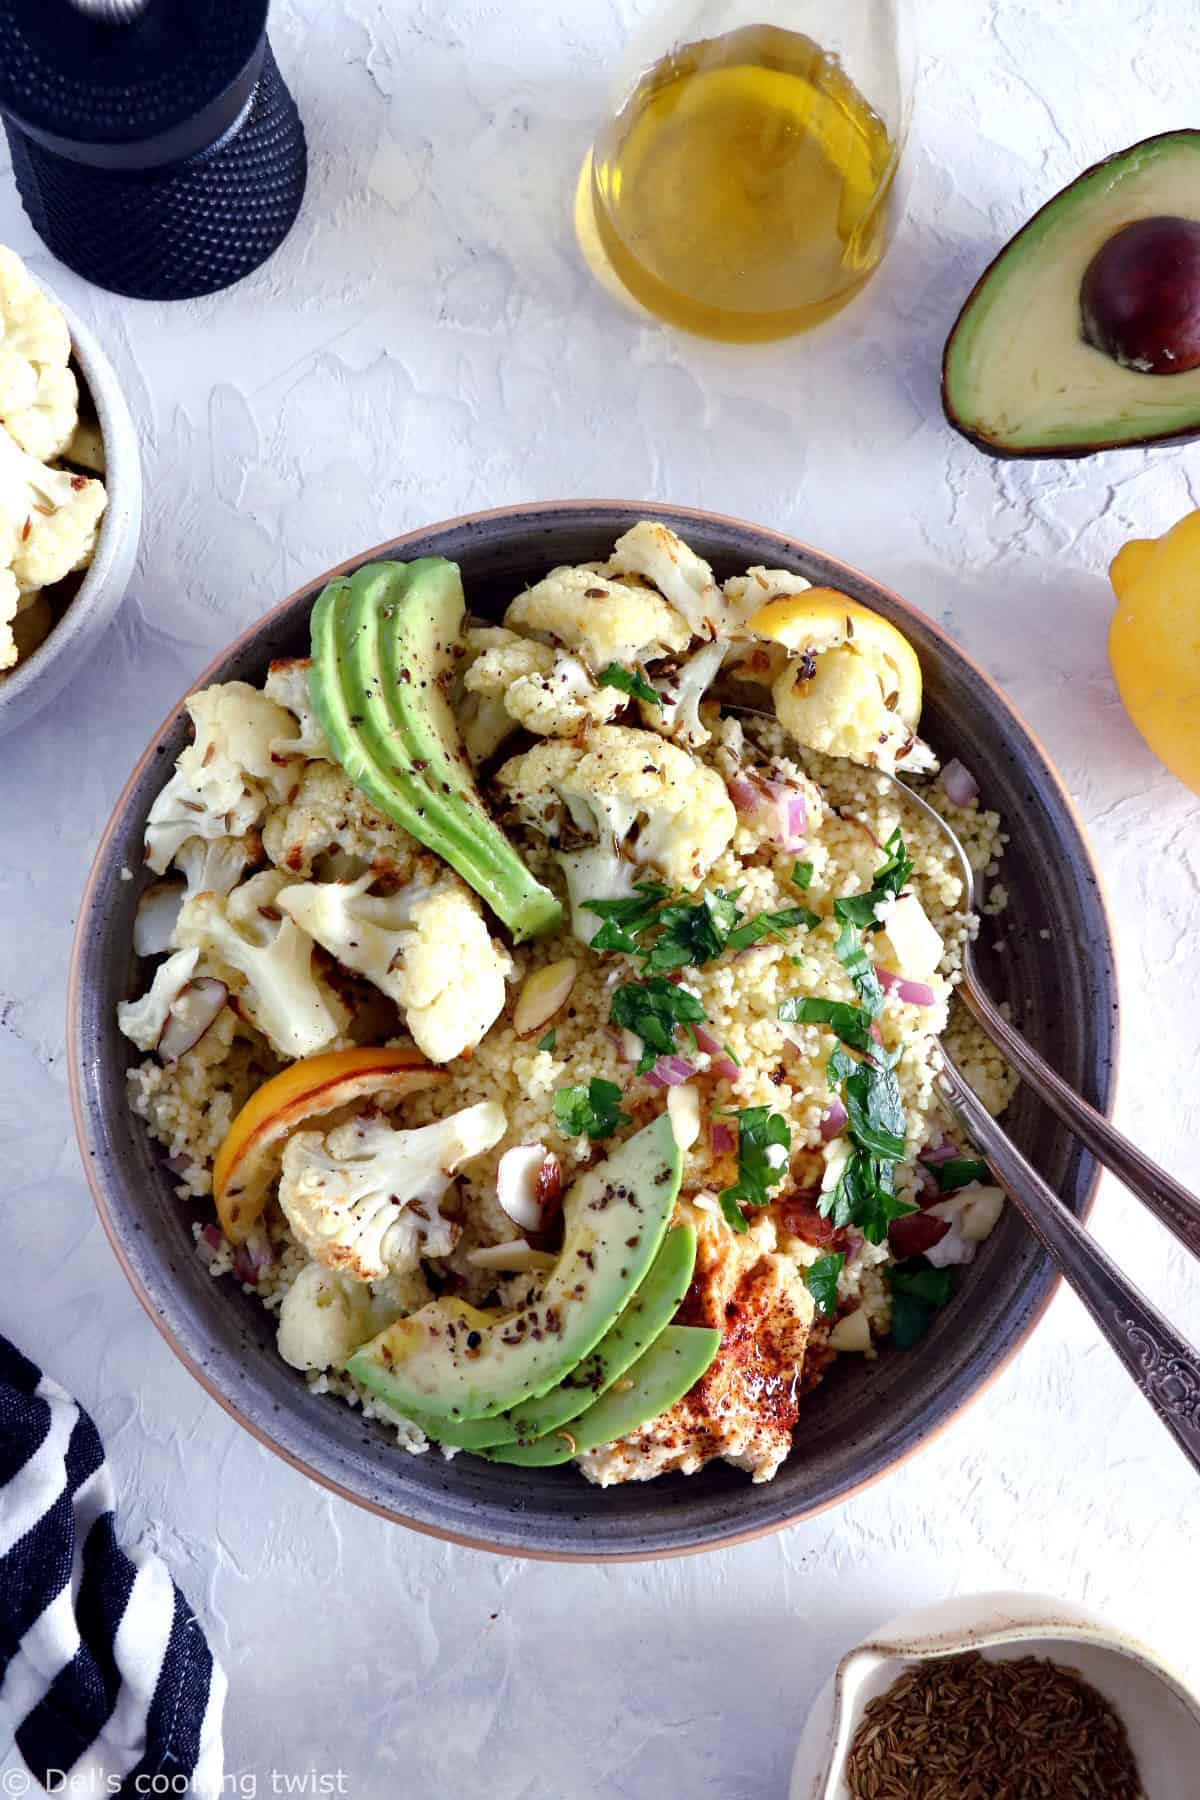 This quick and easy cumin-roasted cauliflower tabbouleh salad is game-changing. It's a super healthy vegan salad recipe, packed with delicious roasted veggies, fresh herbs, and loaded with plant-based protein.